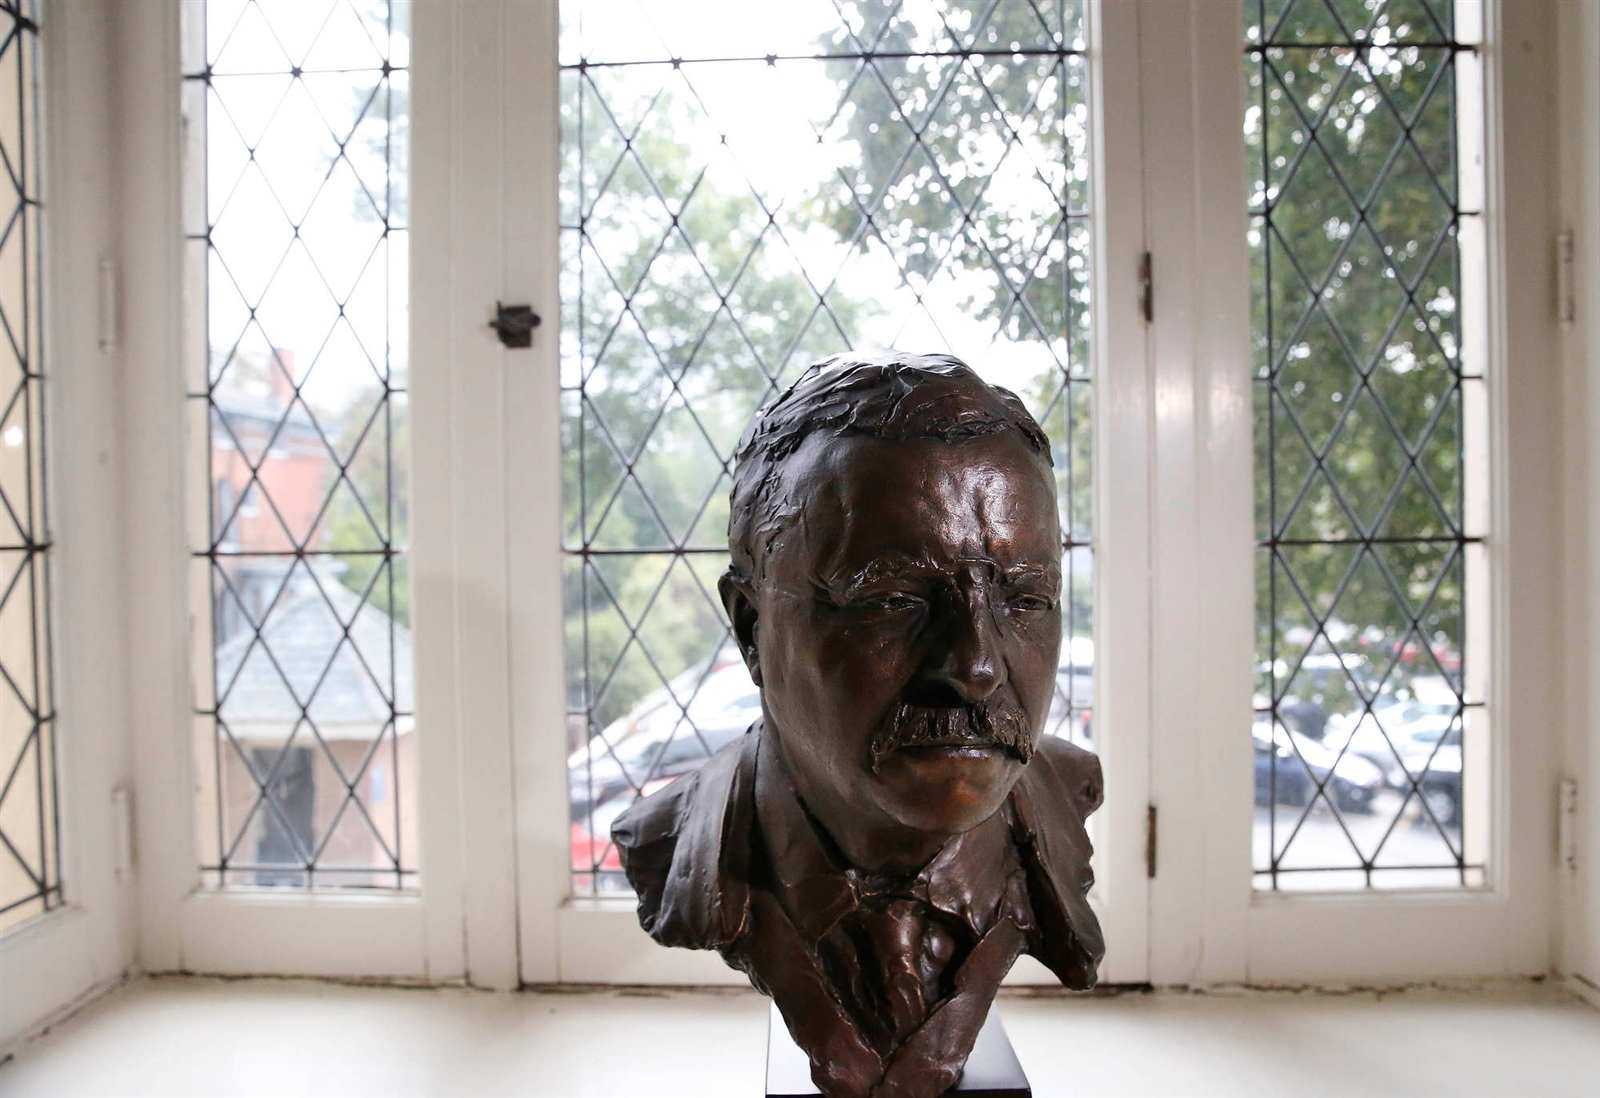 A bust of Theodore Roosevelt sits in a leaded glass window that is original to the 1896 addition to the Wilcox Mansion. Roosevelt was just 42 when he took the oath of office in the suit and long coat he would later wear in President William McKinleyu2019s funeral procession.